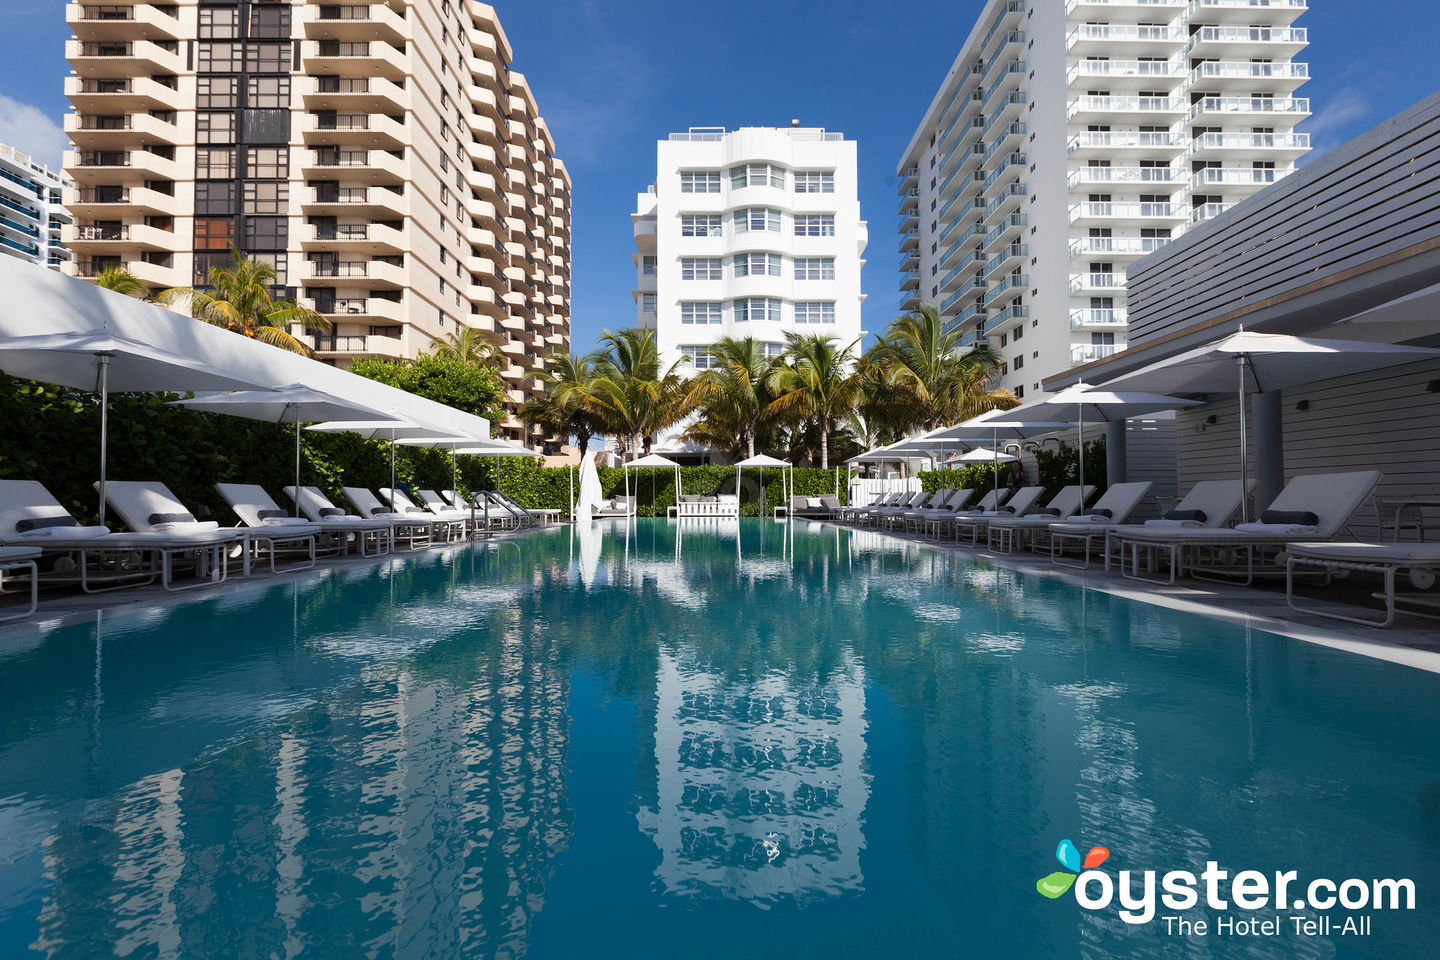 The Best Boutique Hotels in Miami (updated 2019)   Oyster.com